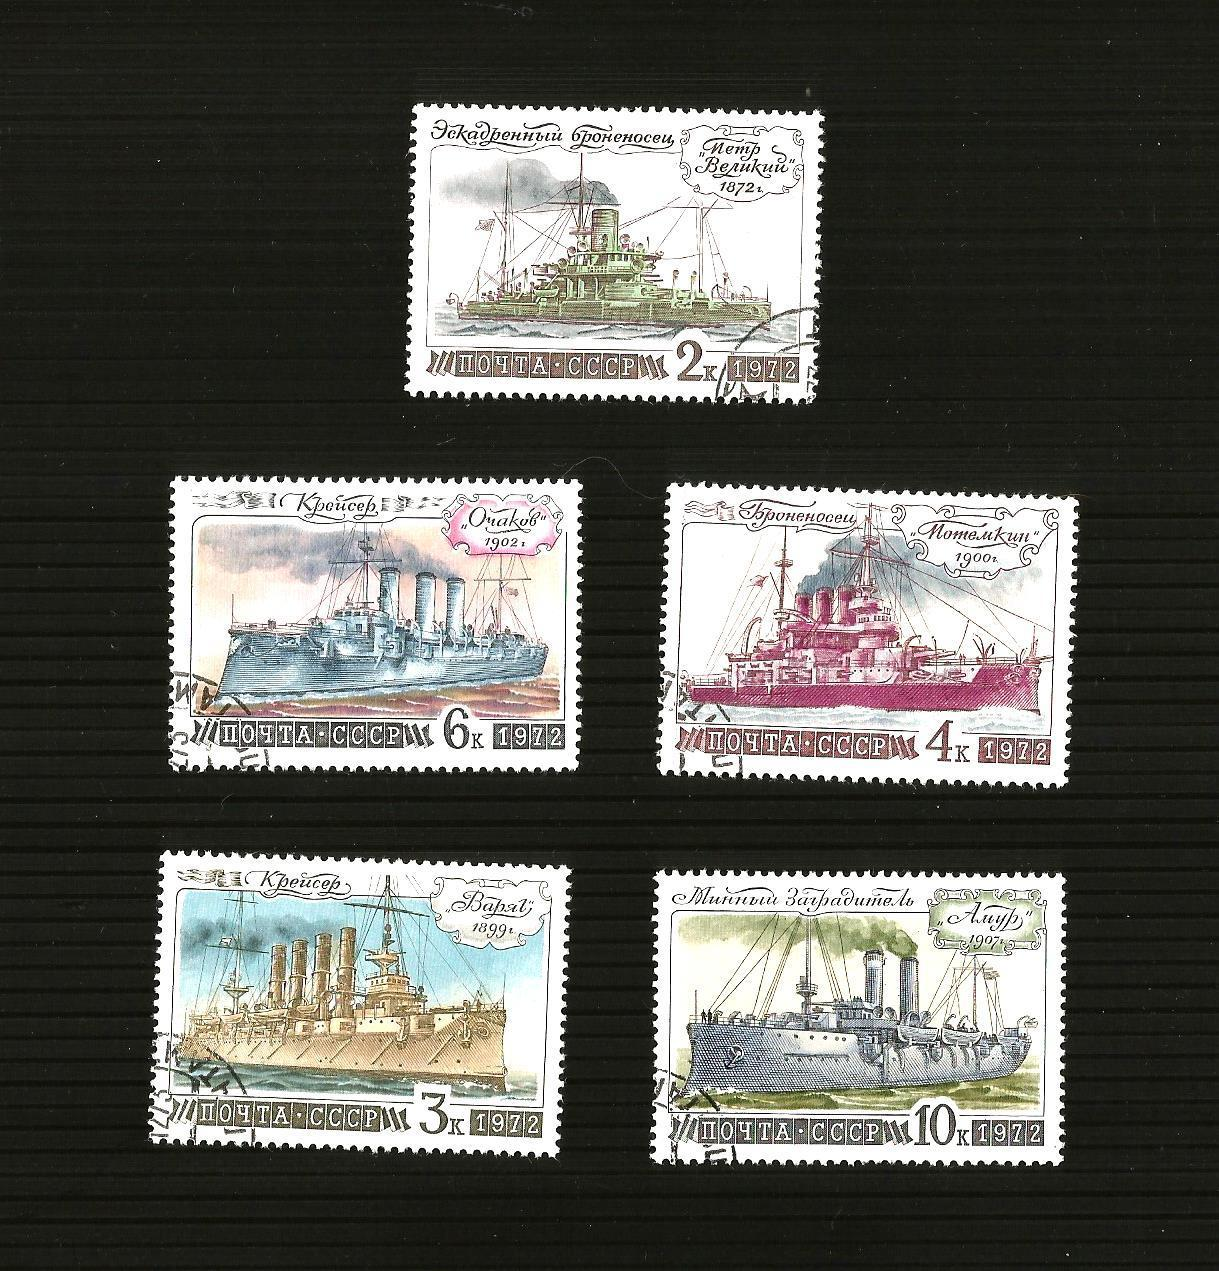 CCCP  1972  -THEMATIC   POSTAGE STAMPS -   5 SHIPS